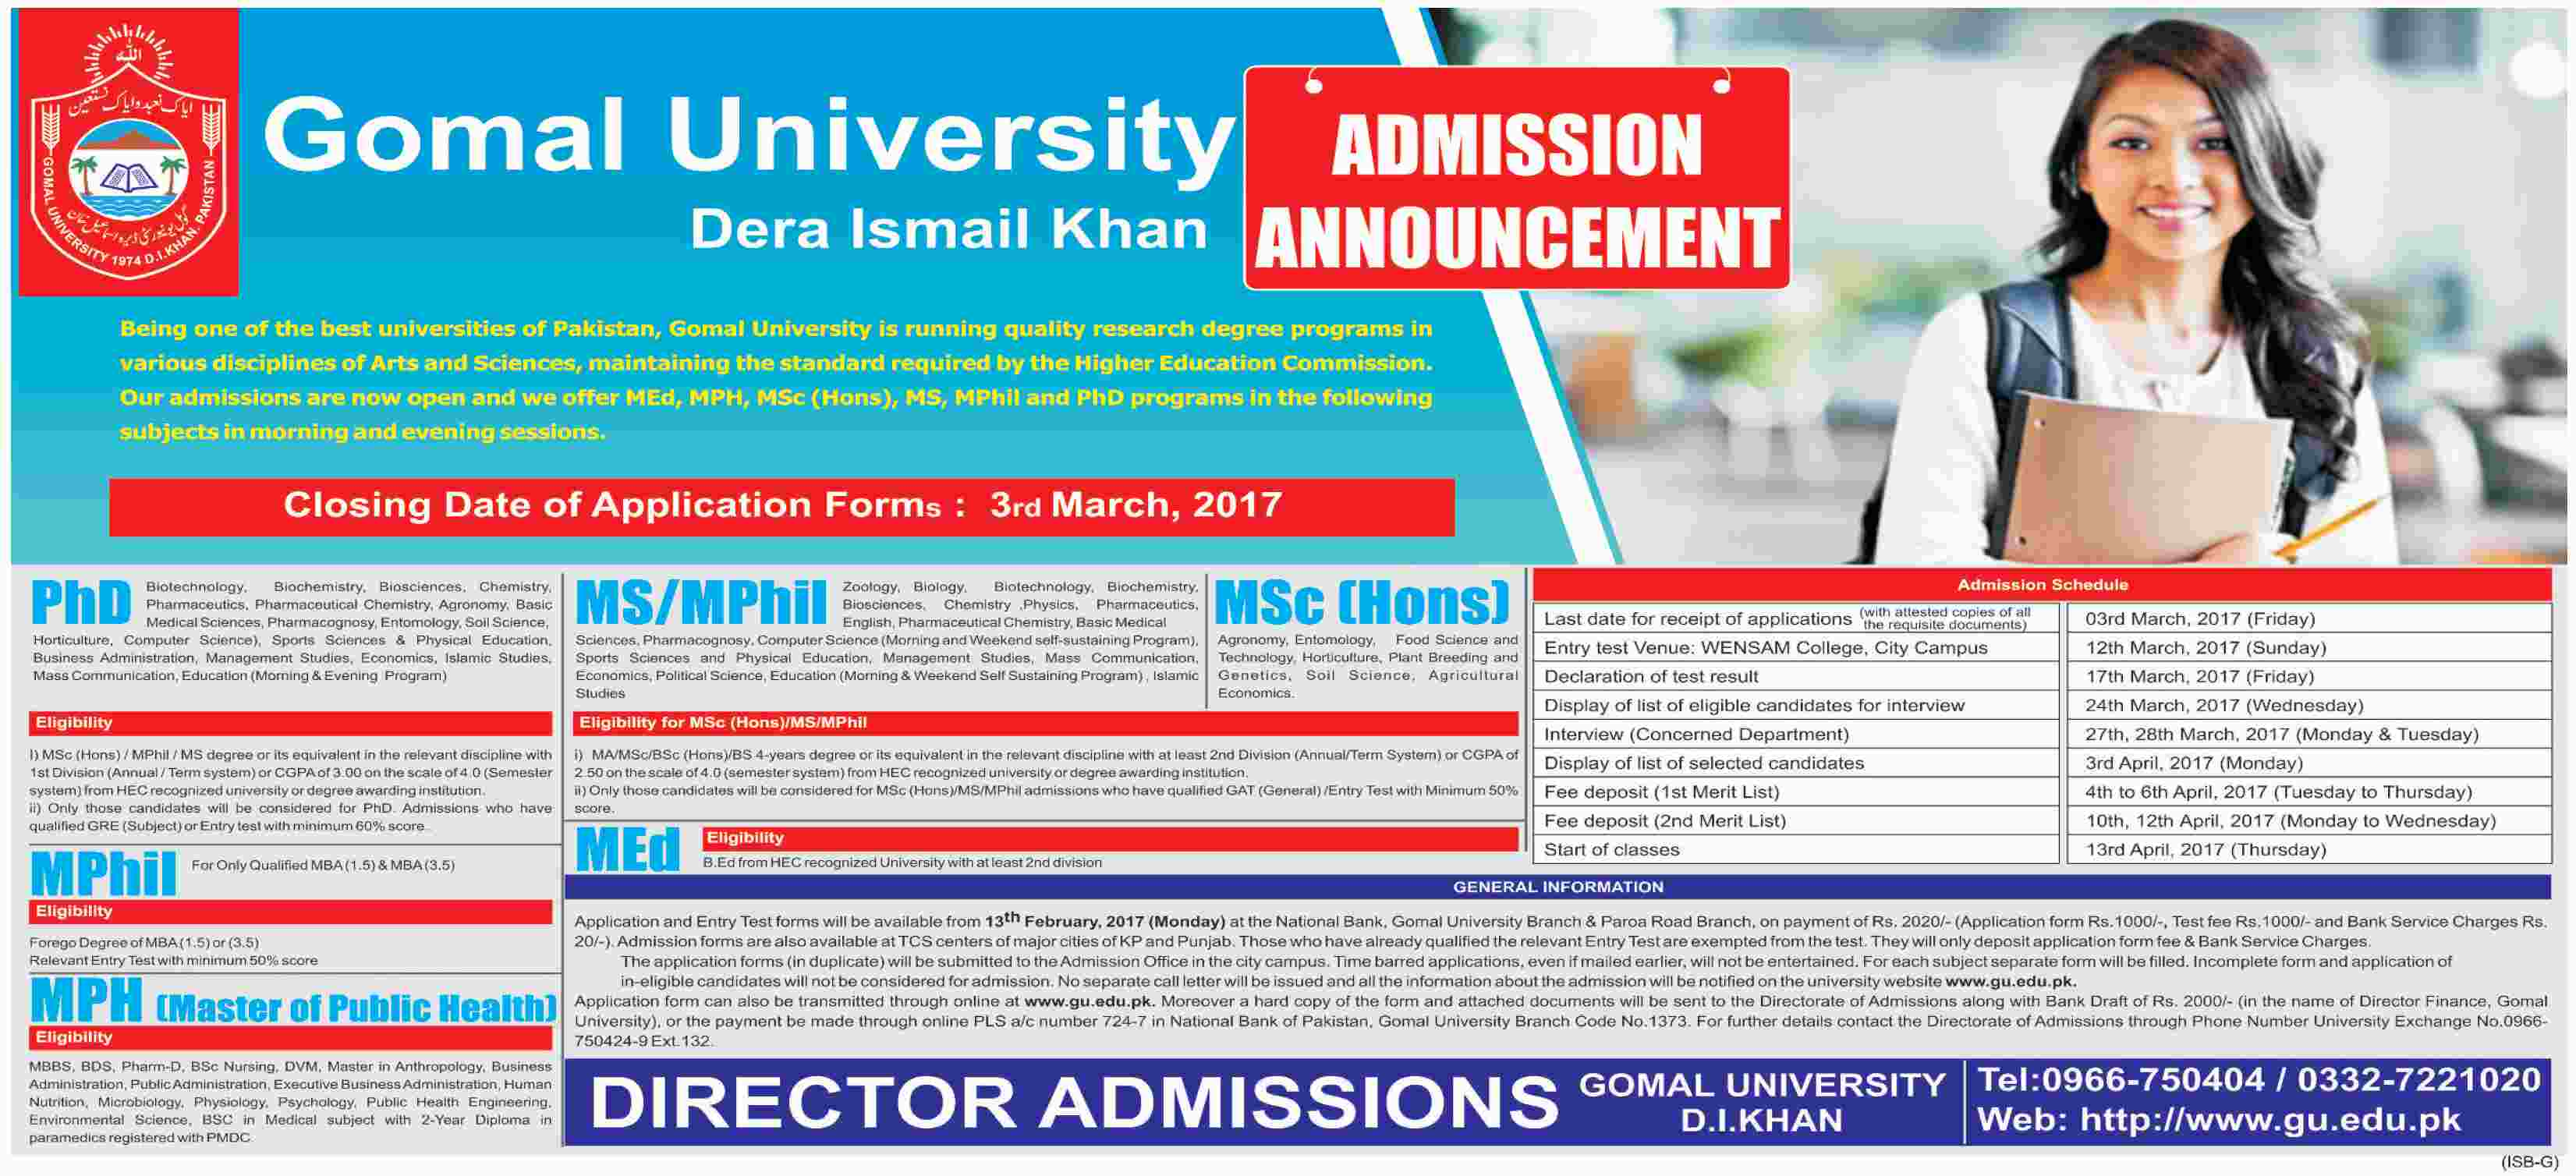 Gomal University DI khan Admission 2017 Form, Last Date